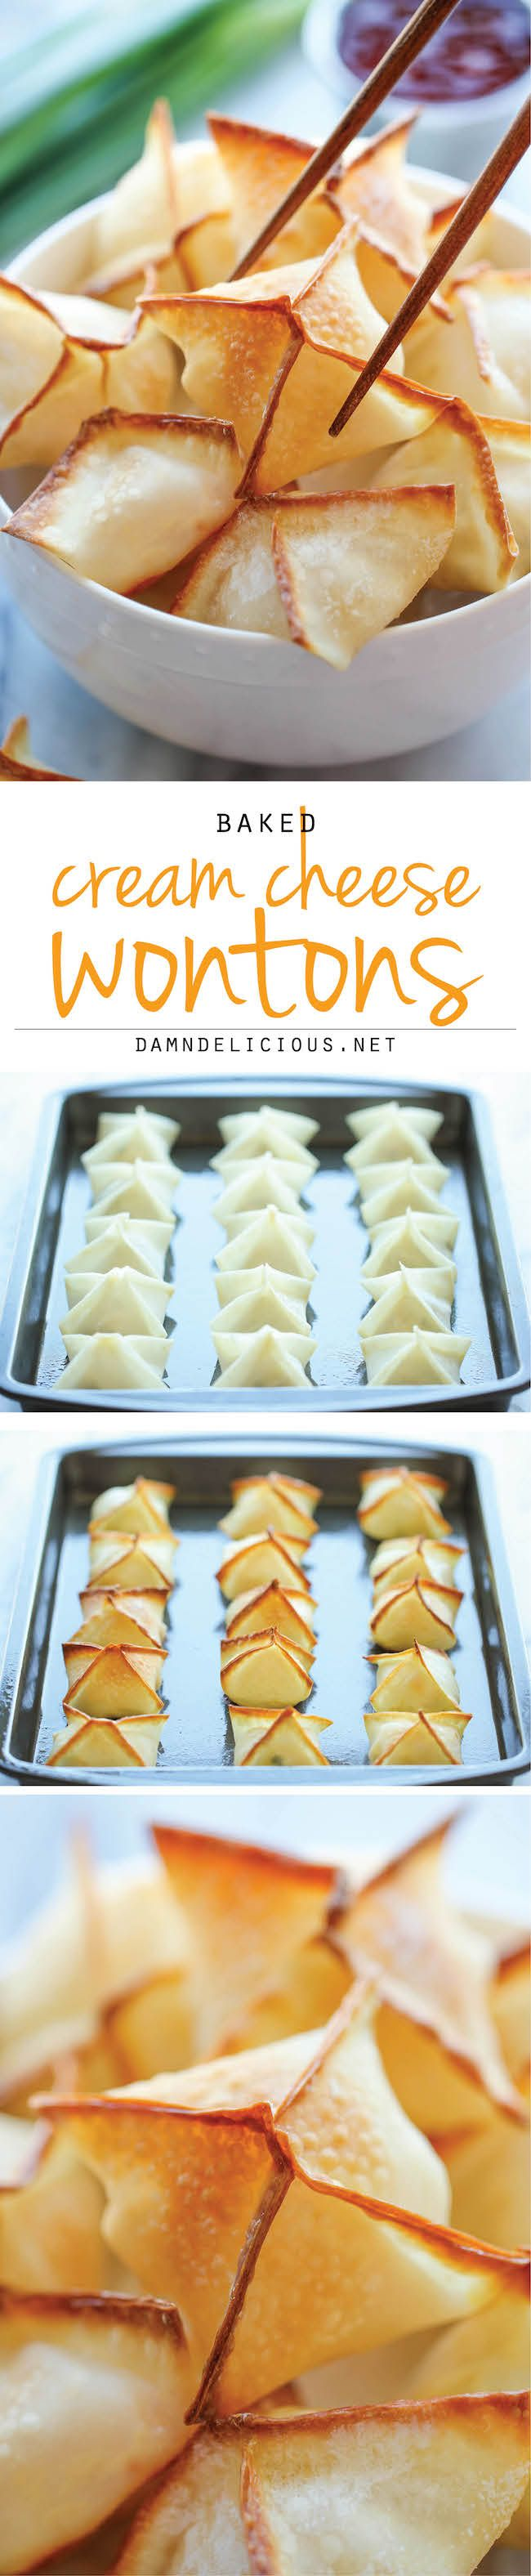 Baked Cream Cheese Wontons- use raw shrimp and cream cheese. Brush/spray with oil before baking.